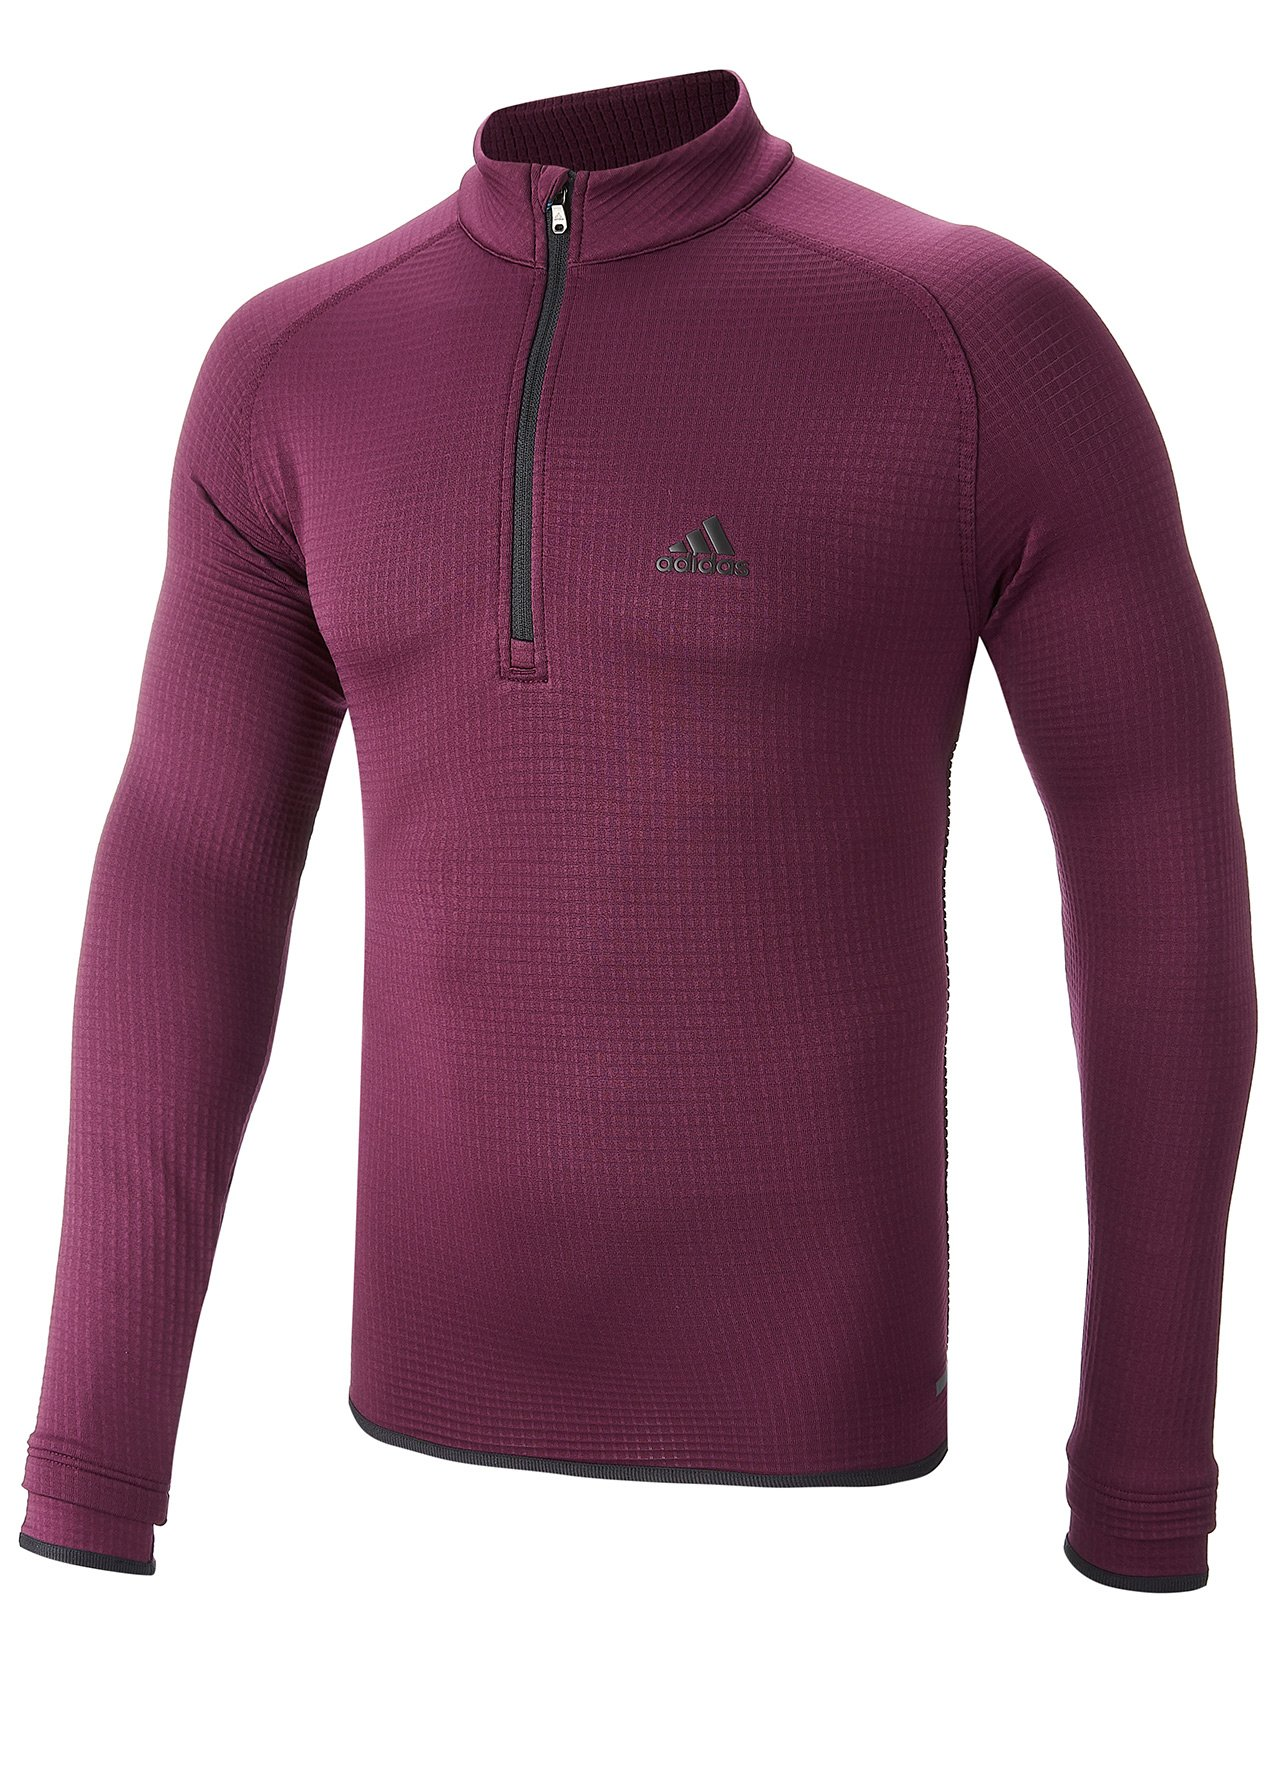 e332d78bd26b Golf Clothing - Sweaters - Adidas Golf Climaheat Gridded 1 4 Zip ...